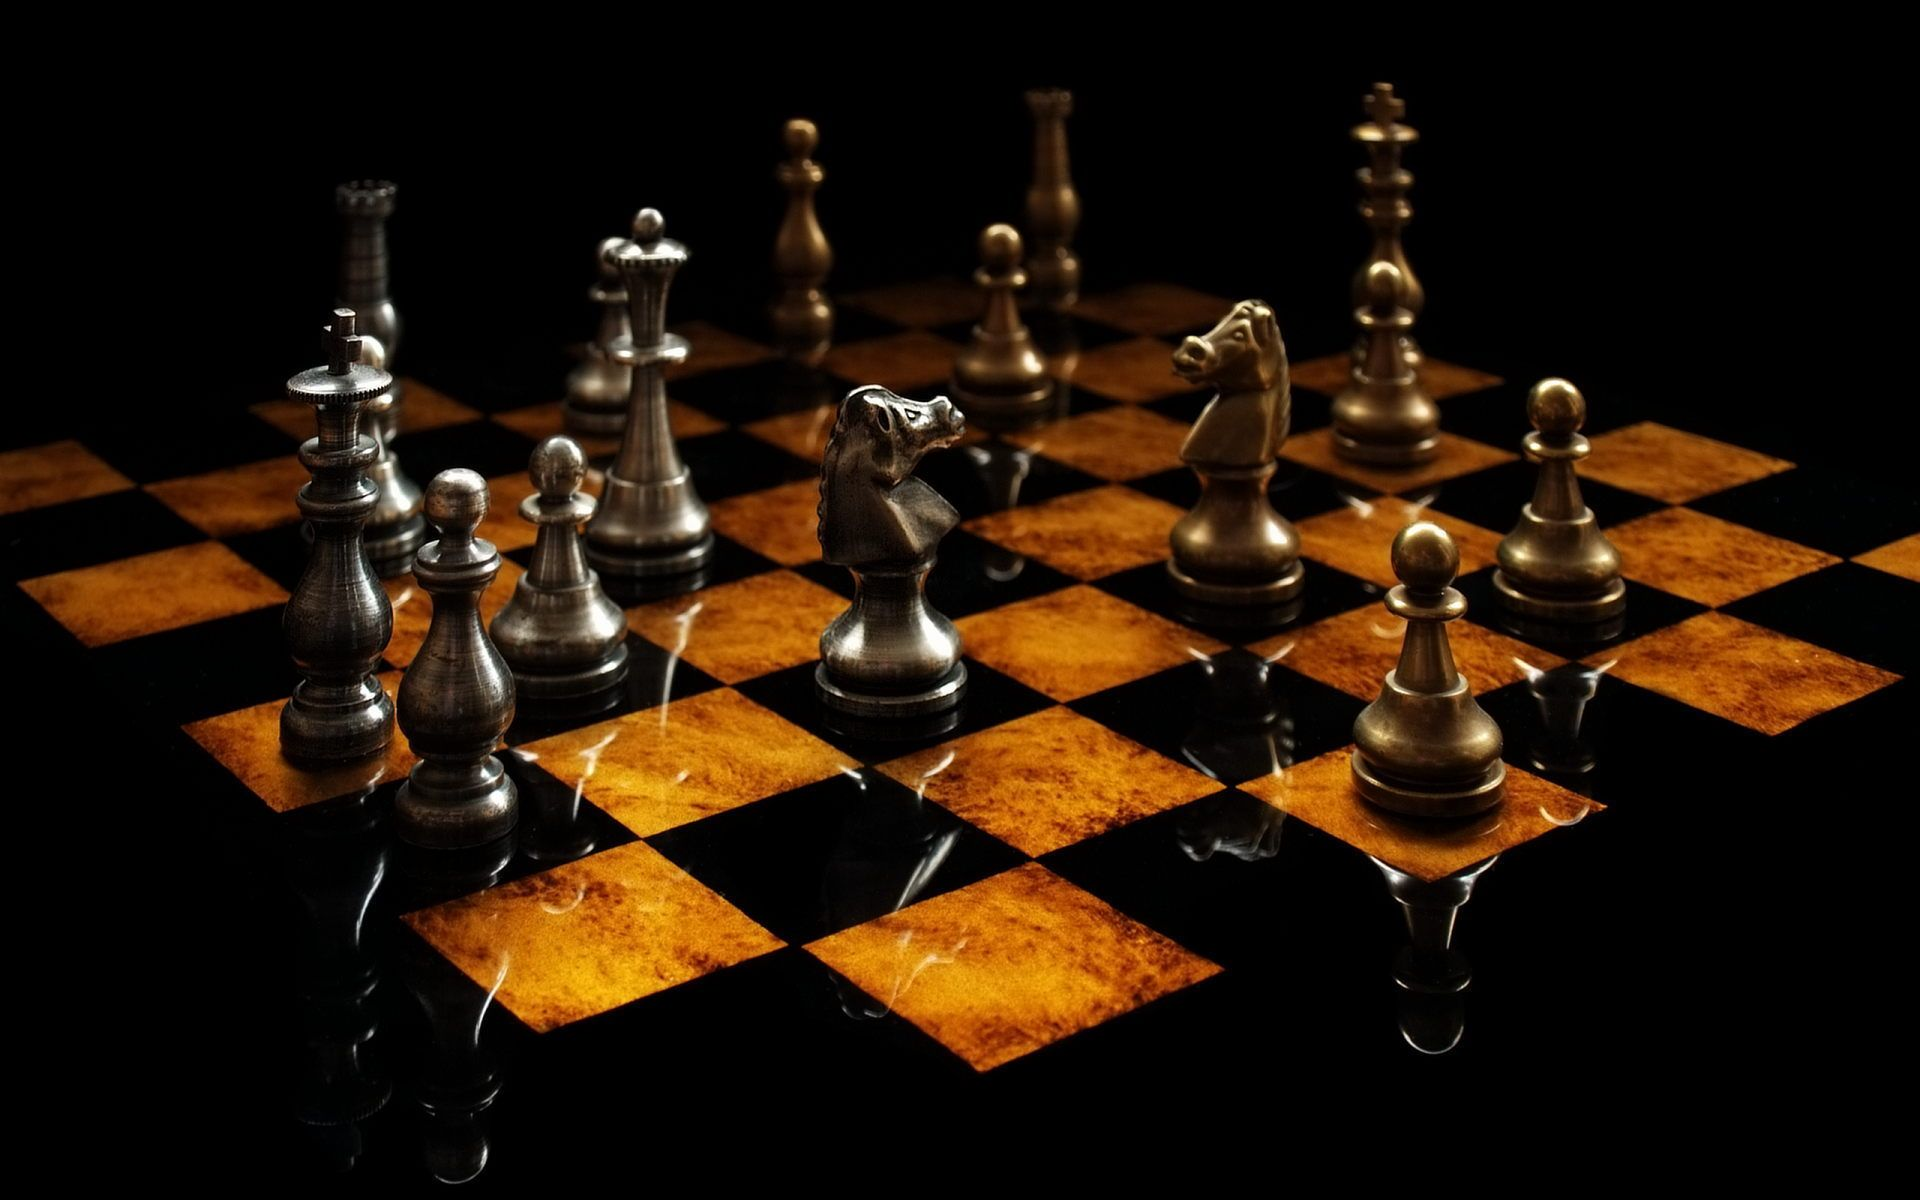 Hd wallpaper pc desktop - 3d Chess Game Picture Hd Wallpaper For Your Pc Desktop